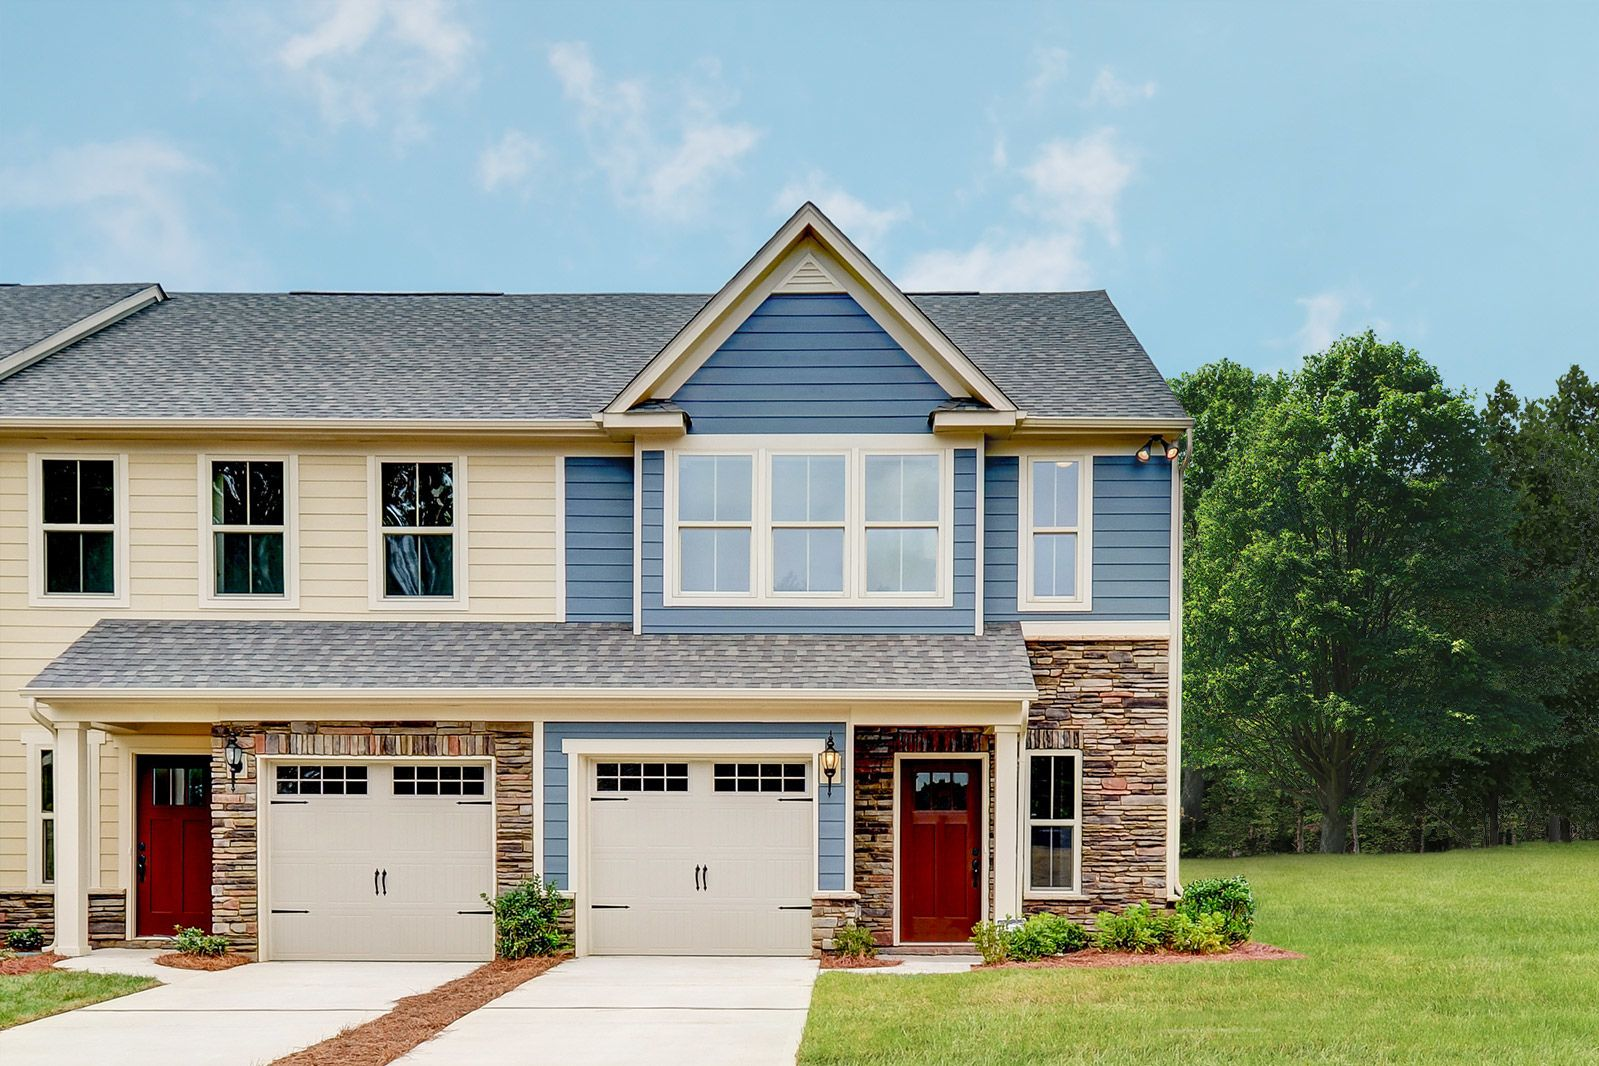 Welcome to Stone Gate at Sparta:These beautifulnew homesinclude an updated stone front so you'll love looking at the exterior of yourhome just as much as you love walking through the door to the beautiful interior.